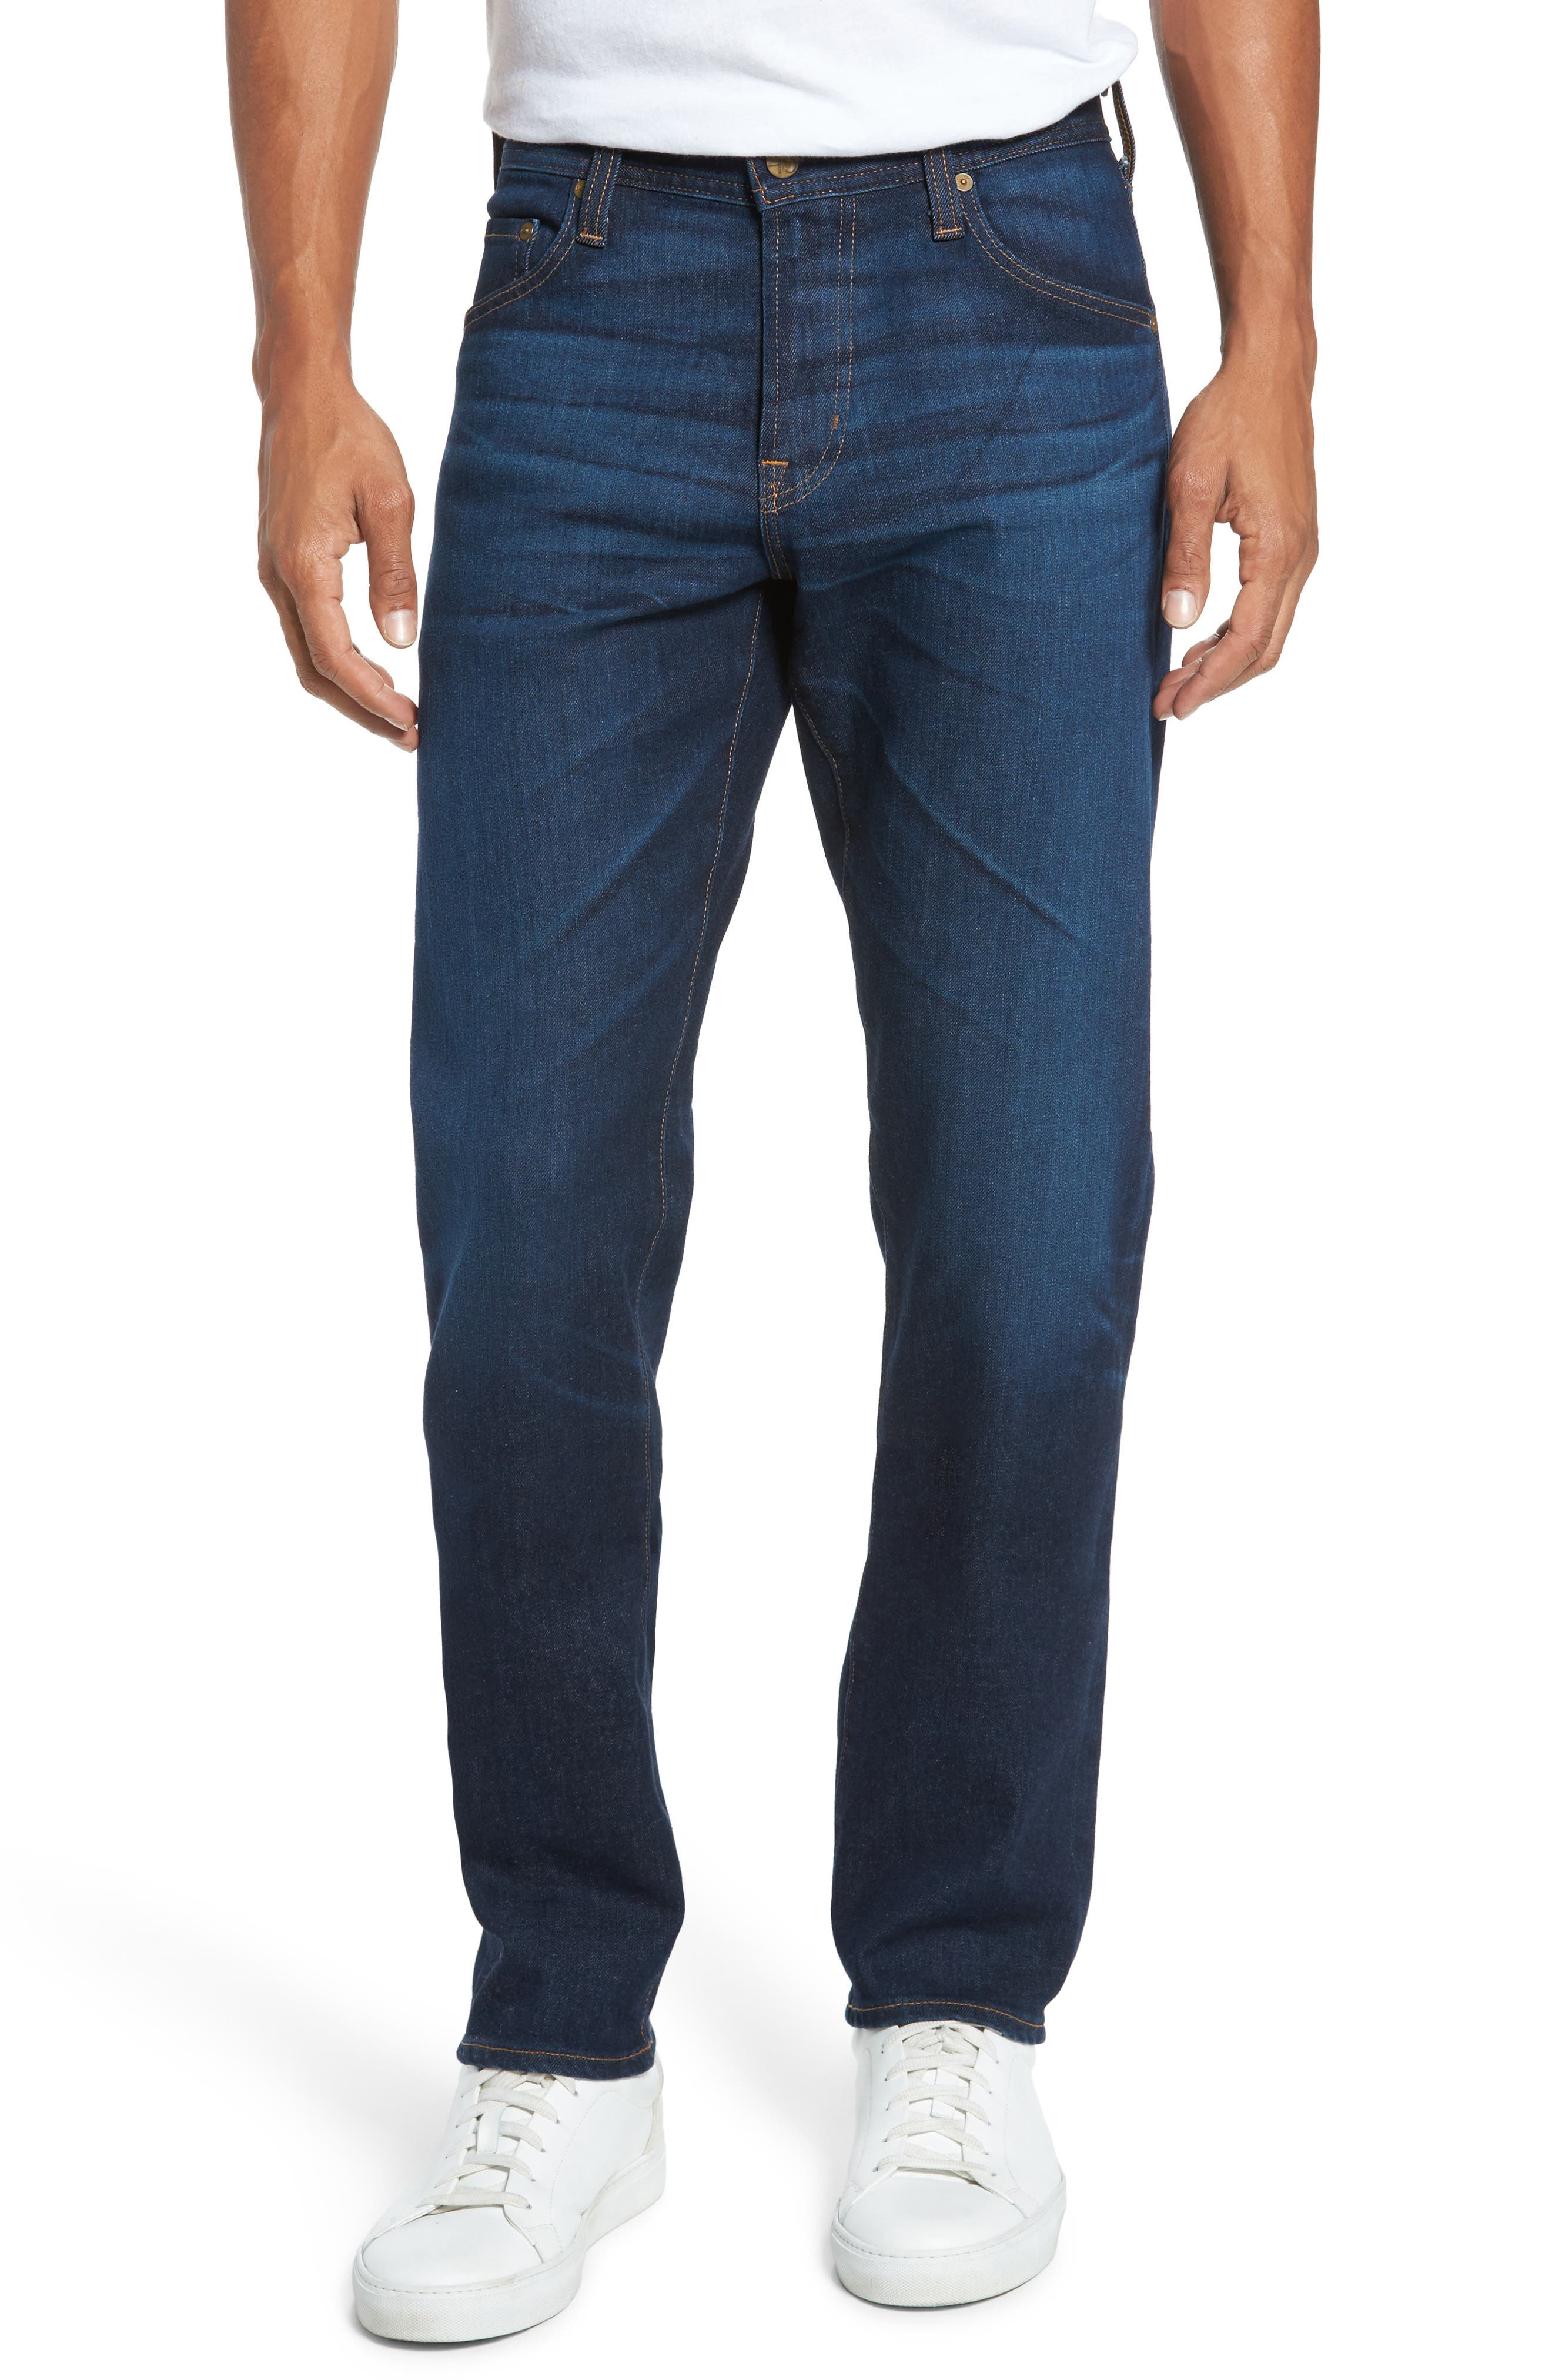 Graduate Slim Straight Fit Jeans,                         Main,                         color, 5 Years Porter